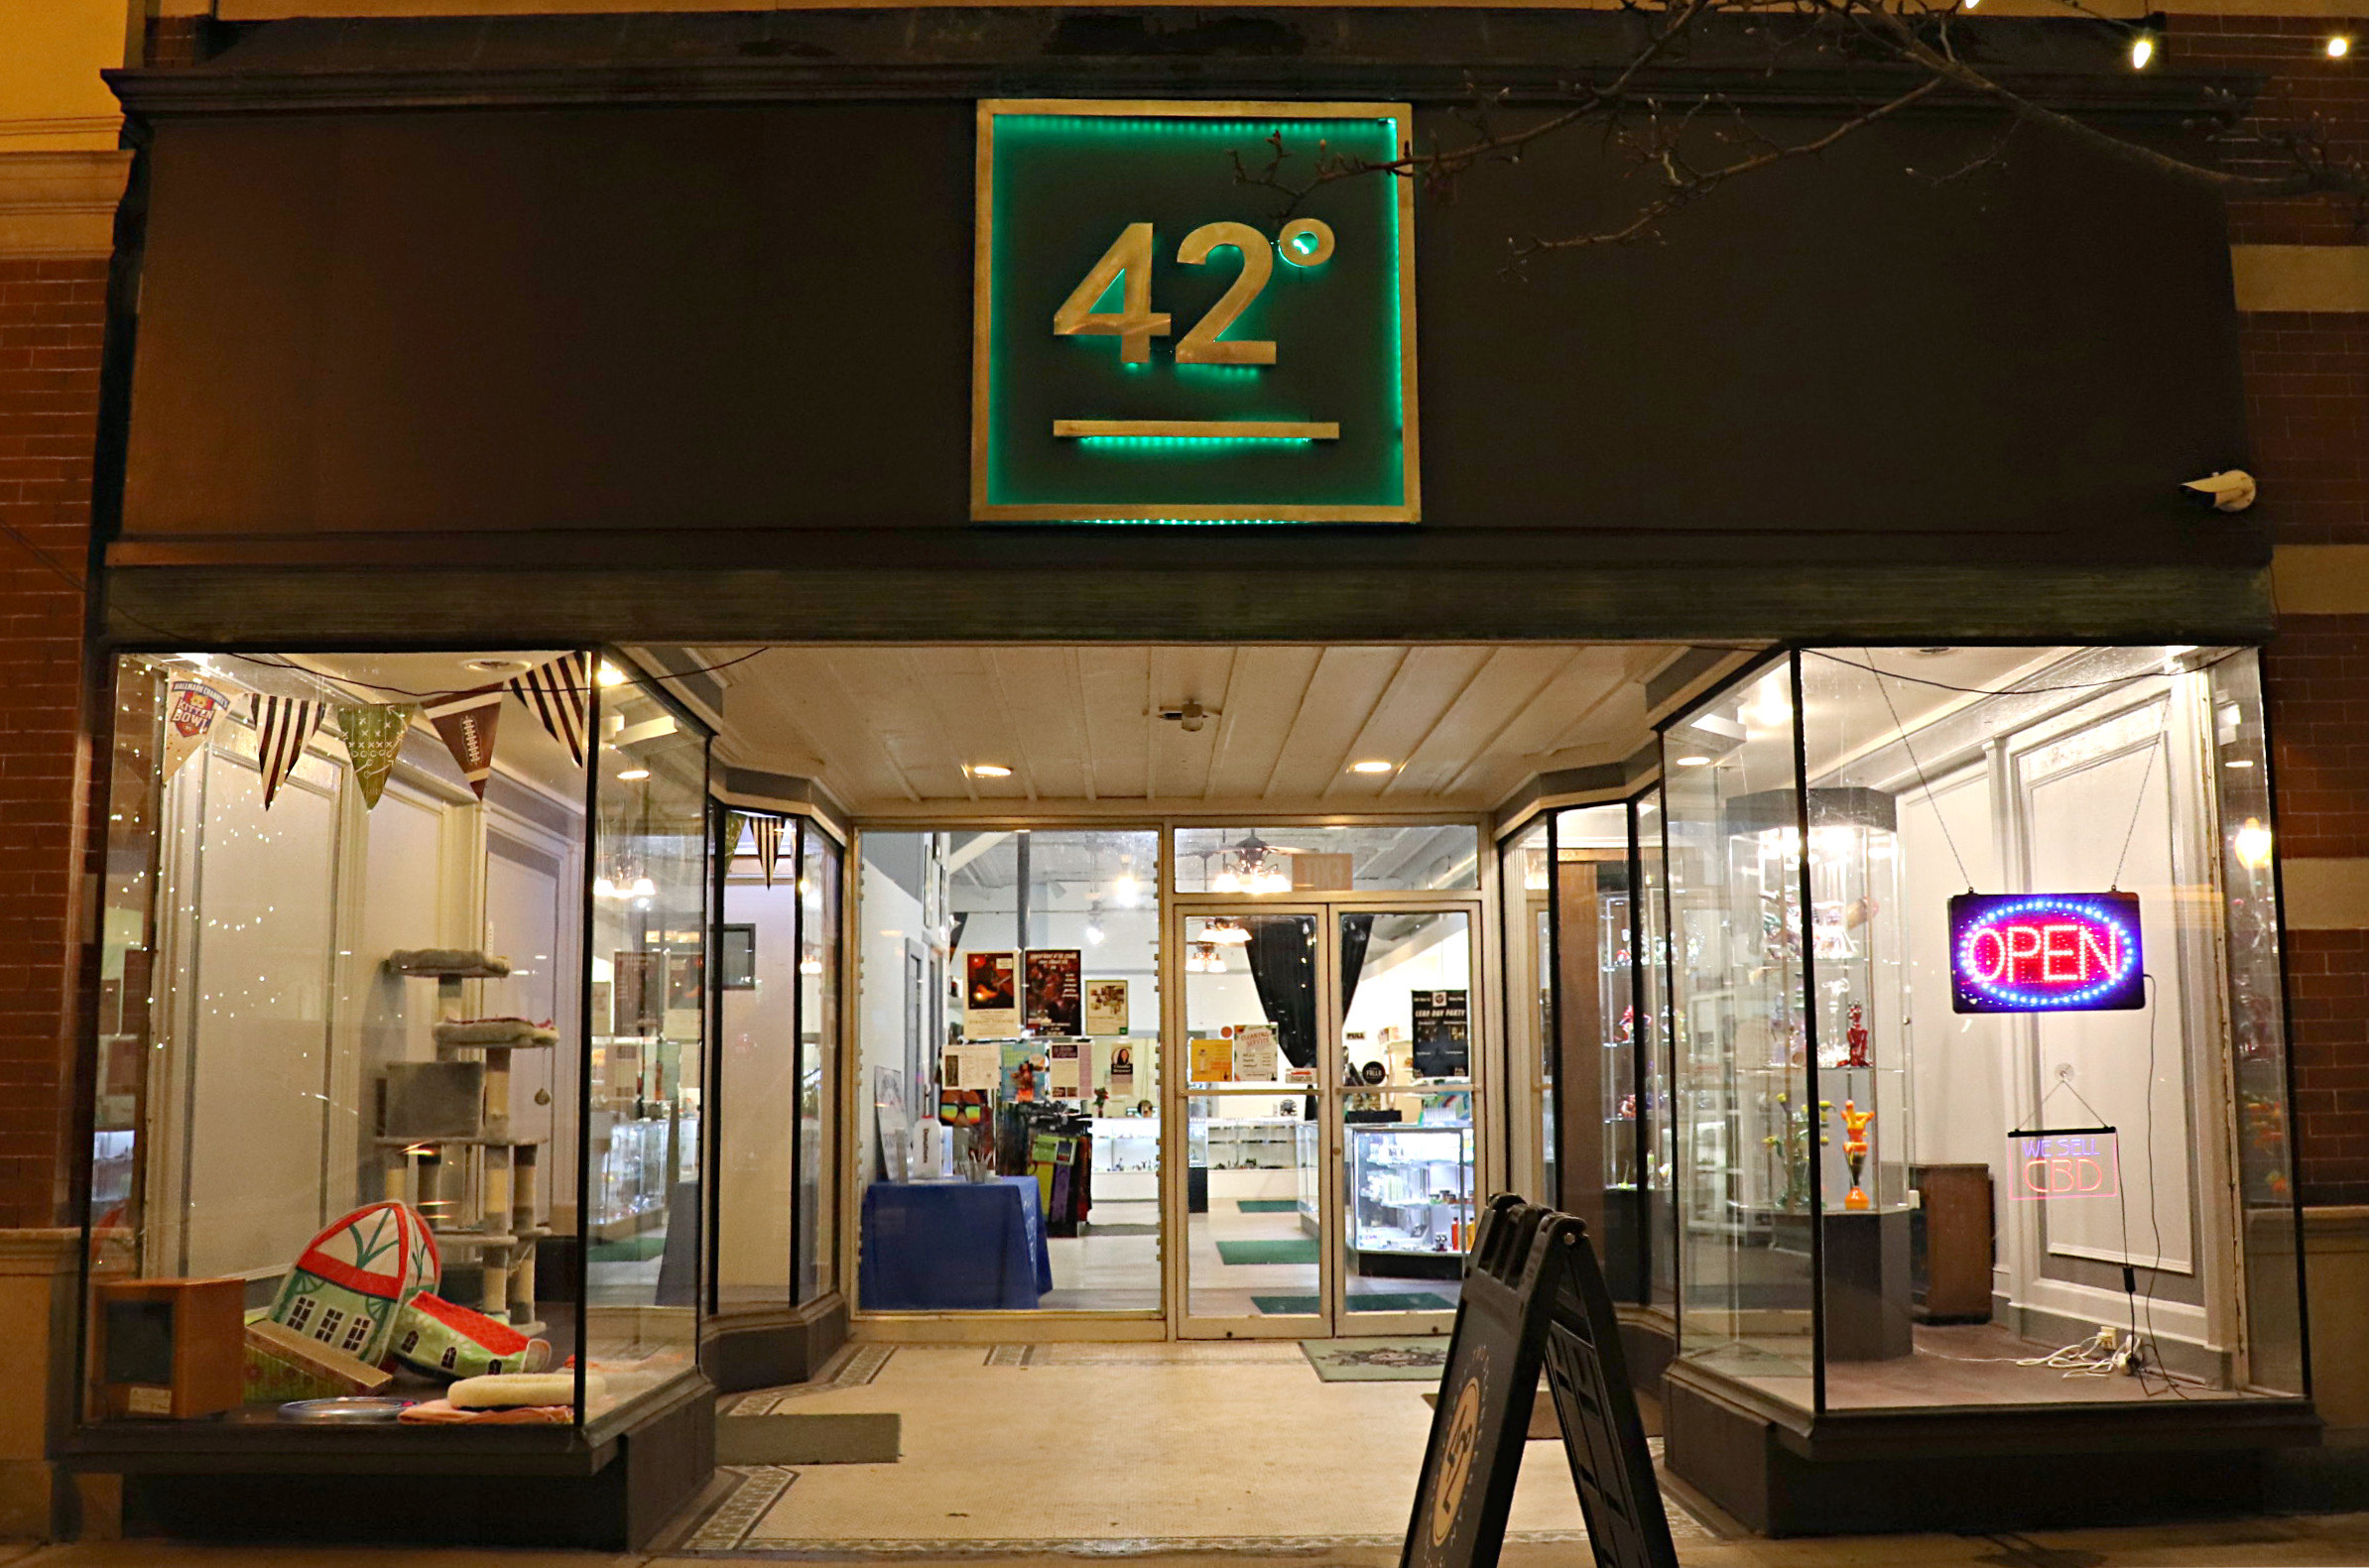 Storefront at 42 Degrees Functional Art Glass Gallery in Glens Falls, NY